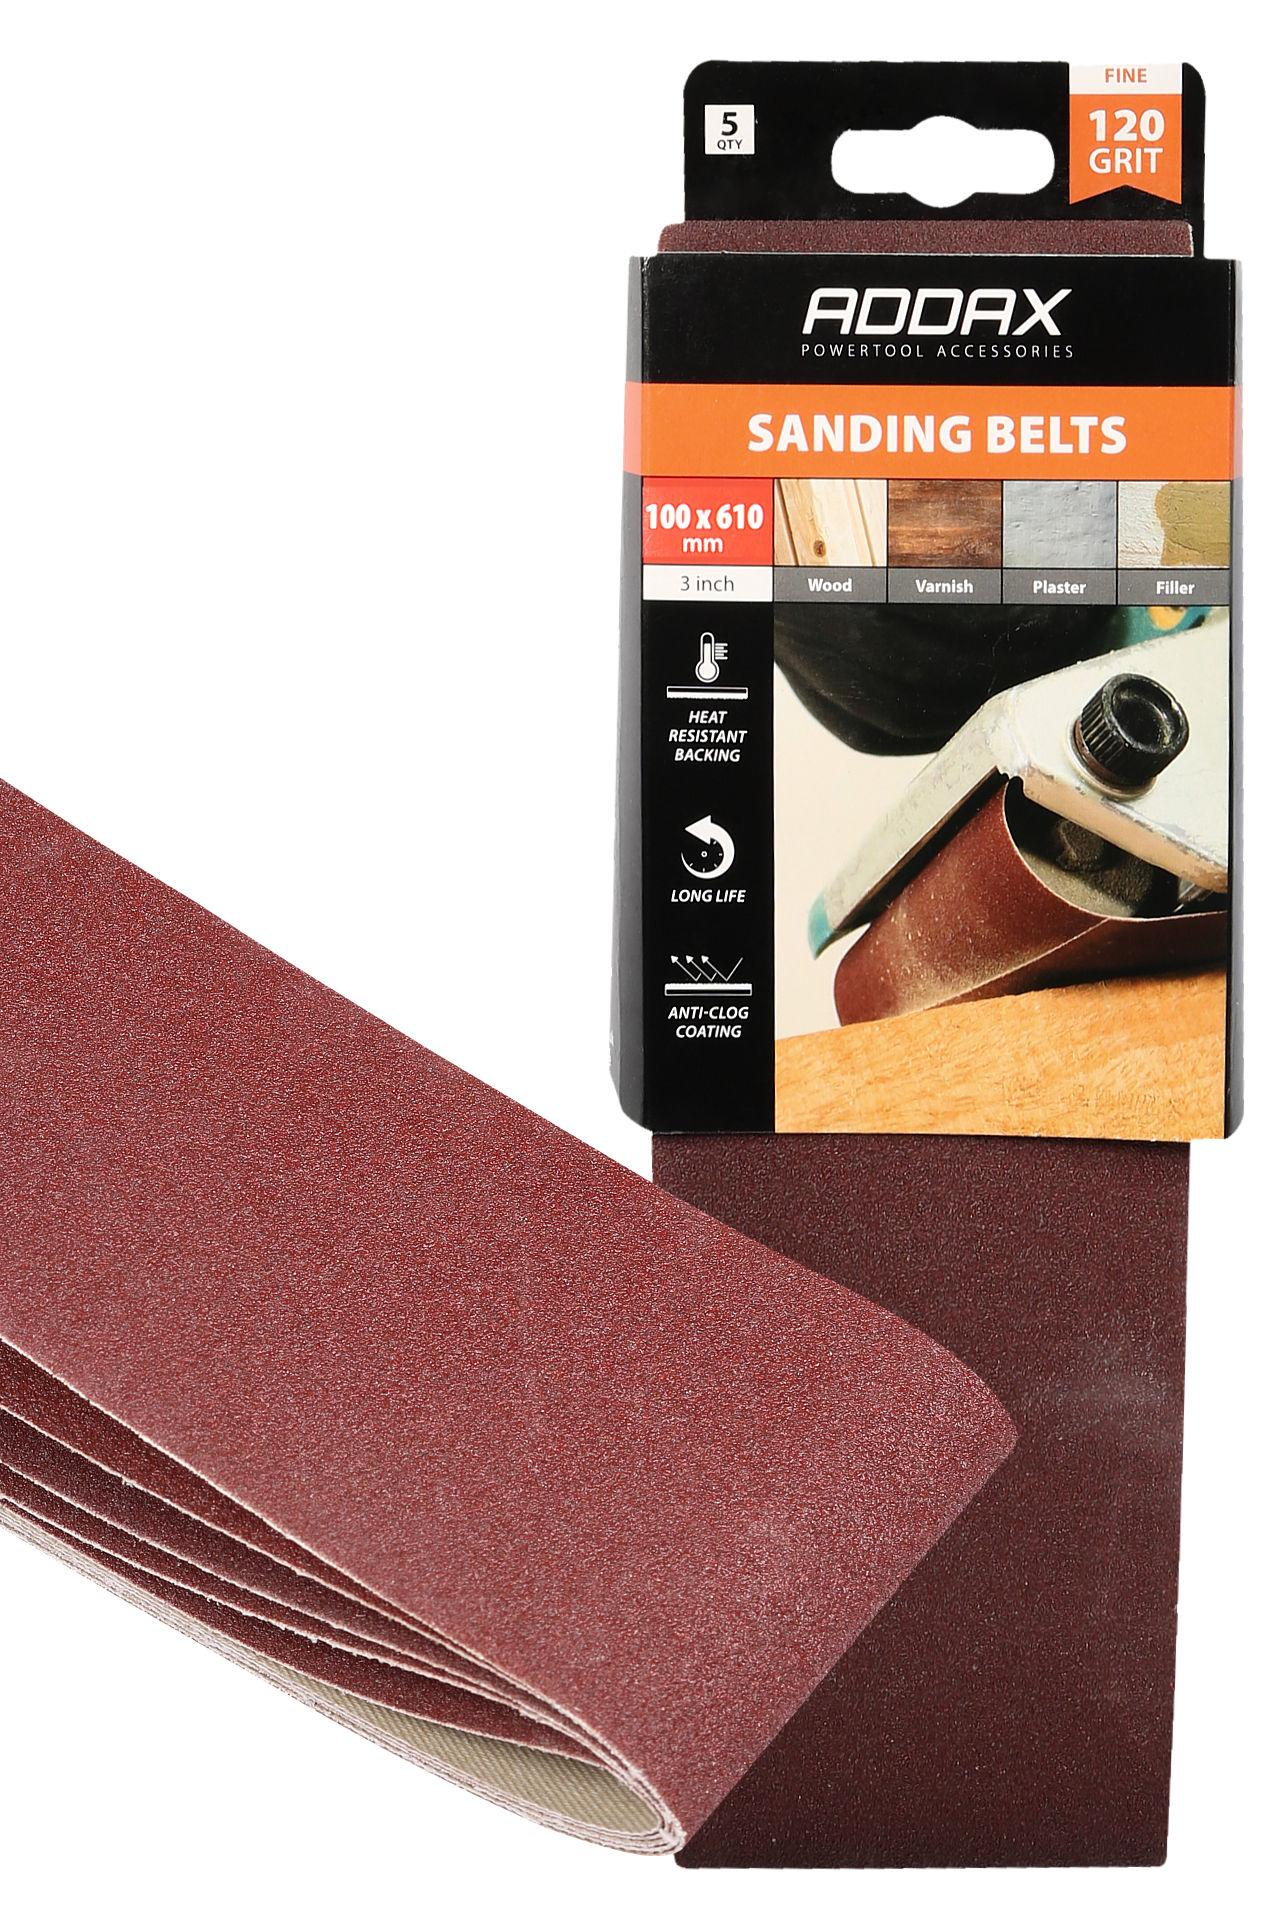 Addax Sanding Belts - Various Grit - Red #5